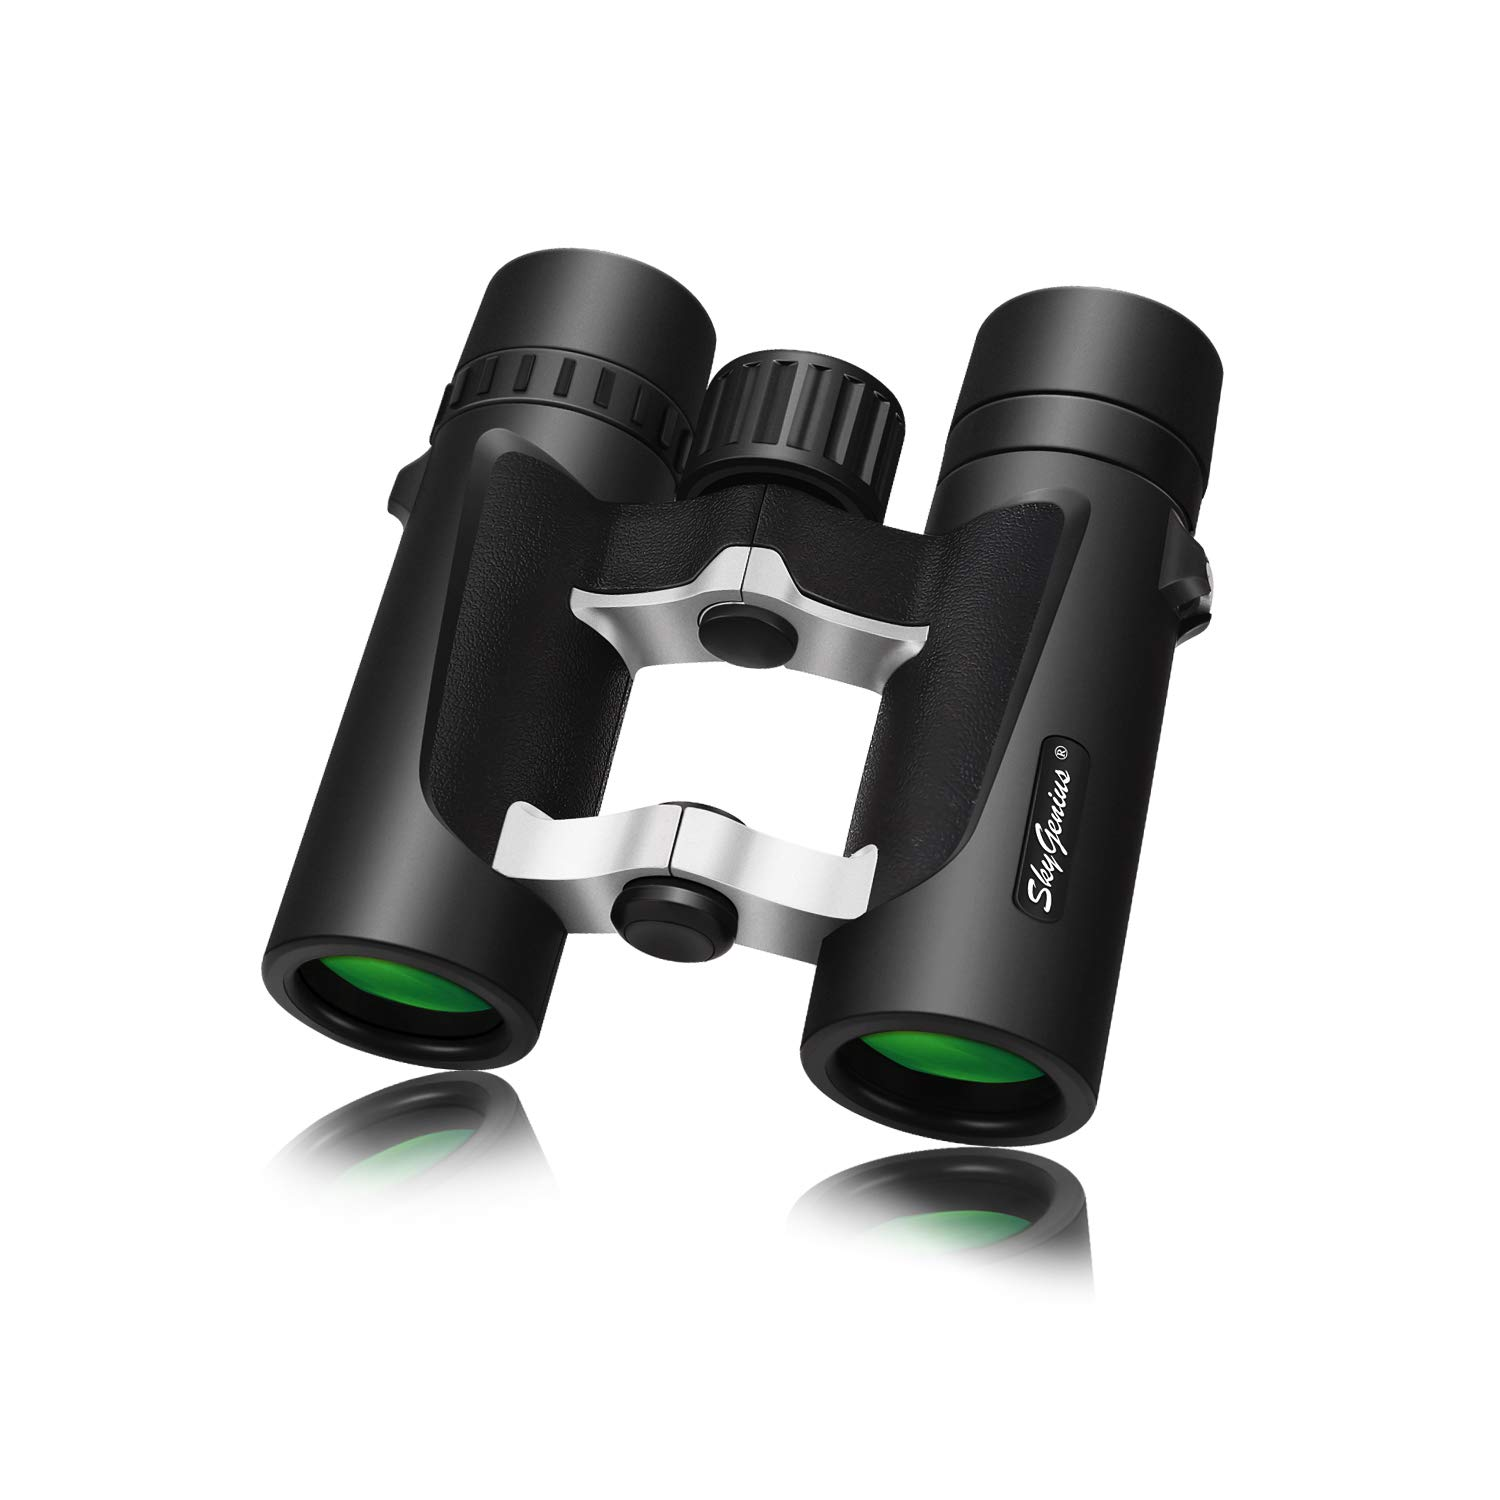 Small Compact Lightweight Binoculars for Travel(Waterproof/Fogproof), Powerful Pocket Binoculars 8x25 for Adults Kids Bird Watching Concerts Sightseeing Hunting Wildlife Watching (BAK4, Green Lens) by SkyGenius